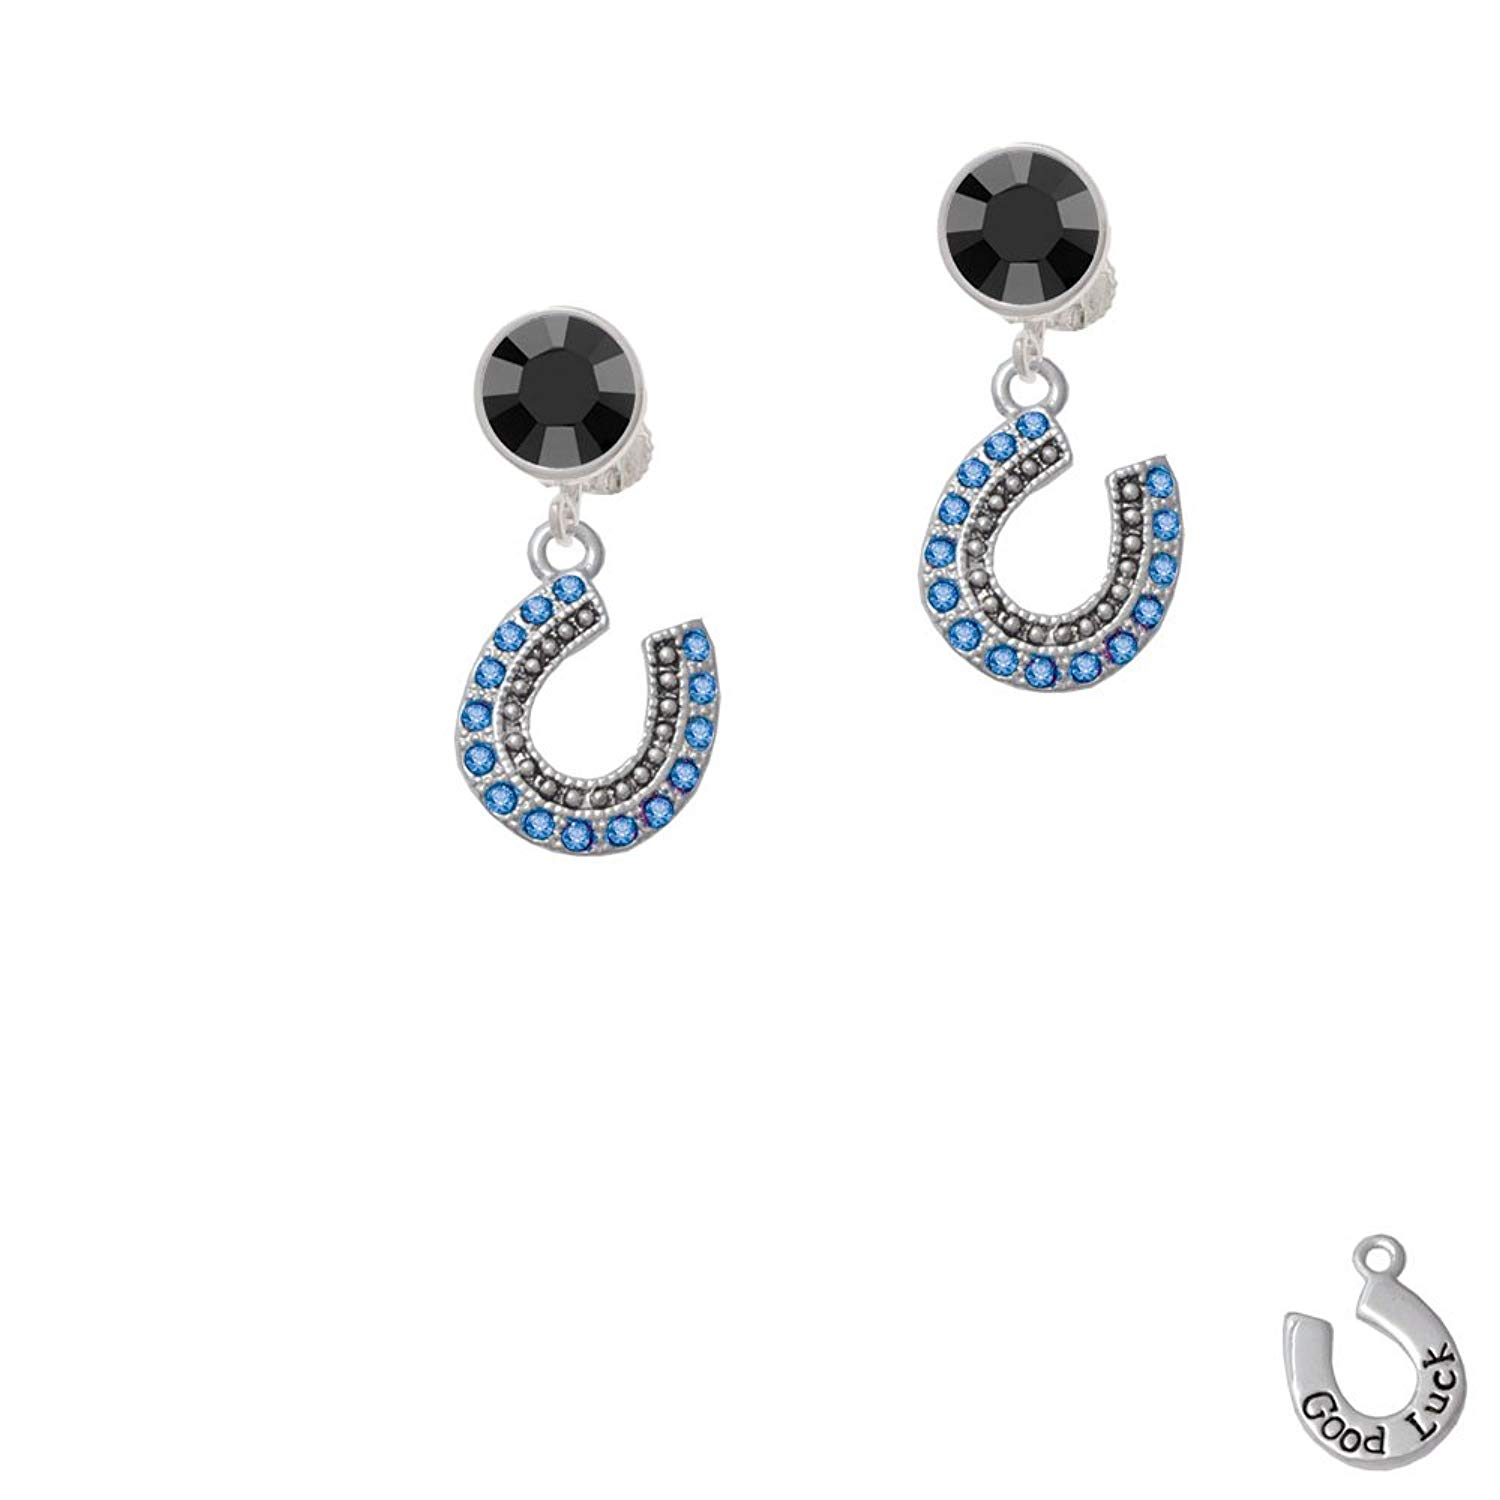 28c76687a89 Silvertone Beaded Blue Crystal Horseshoe with Good Luck - Black Crystal  Clip on Earrings